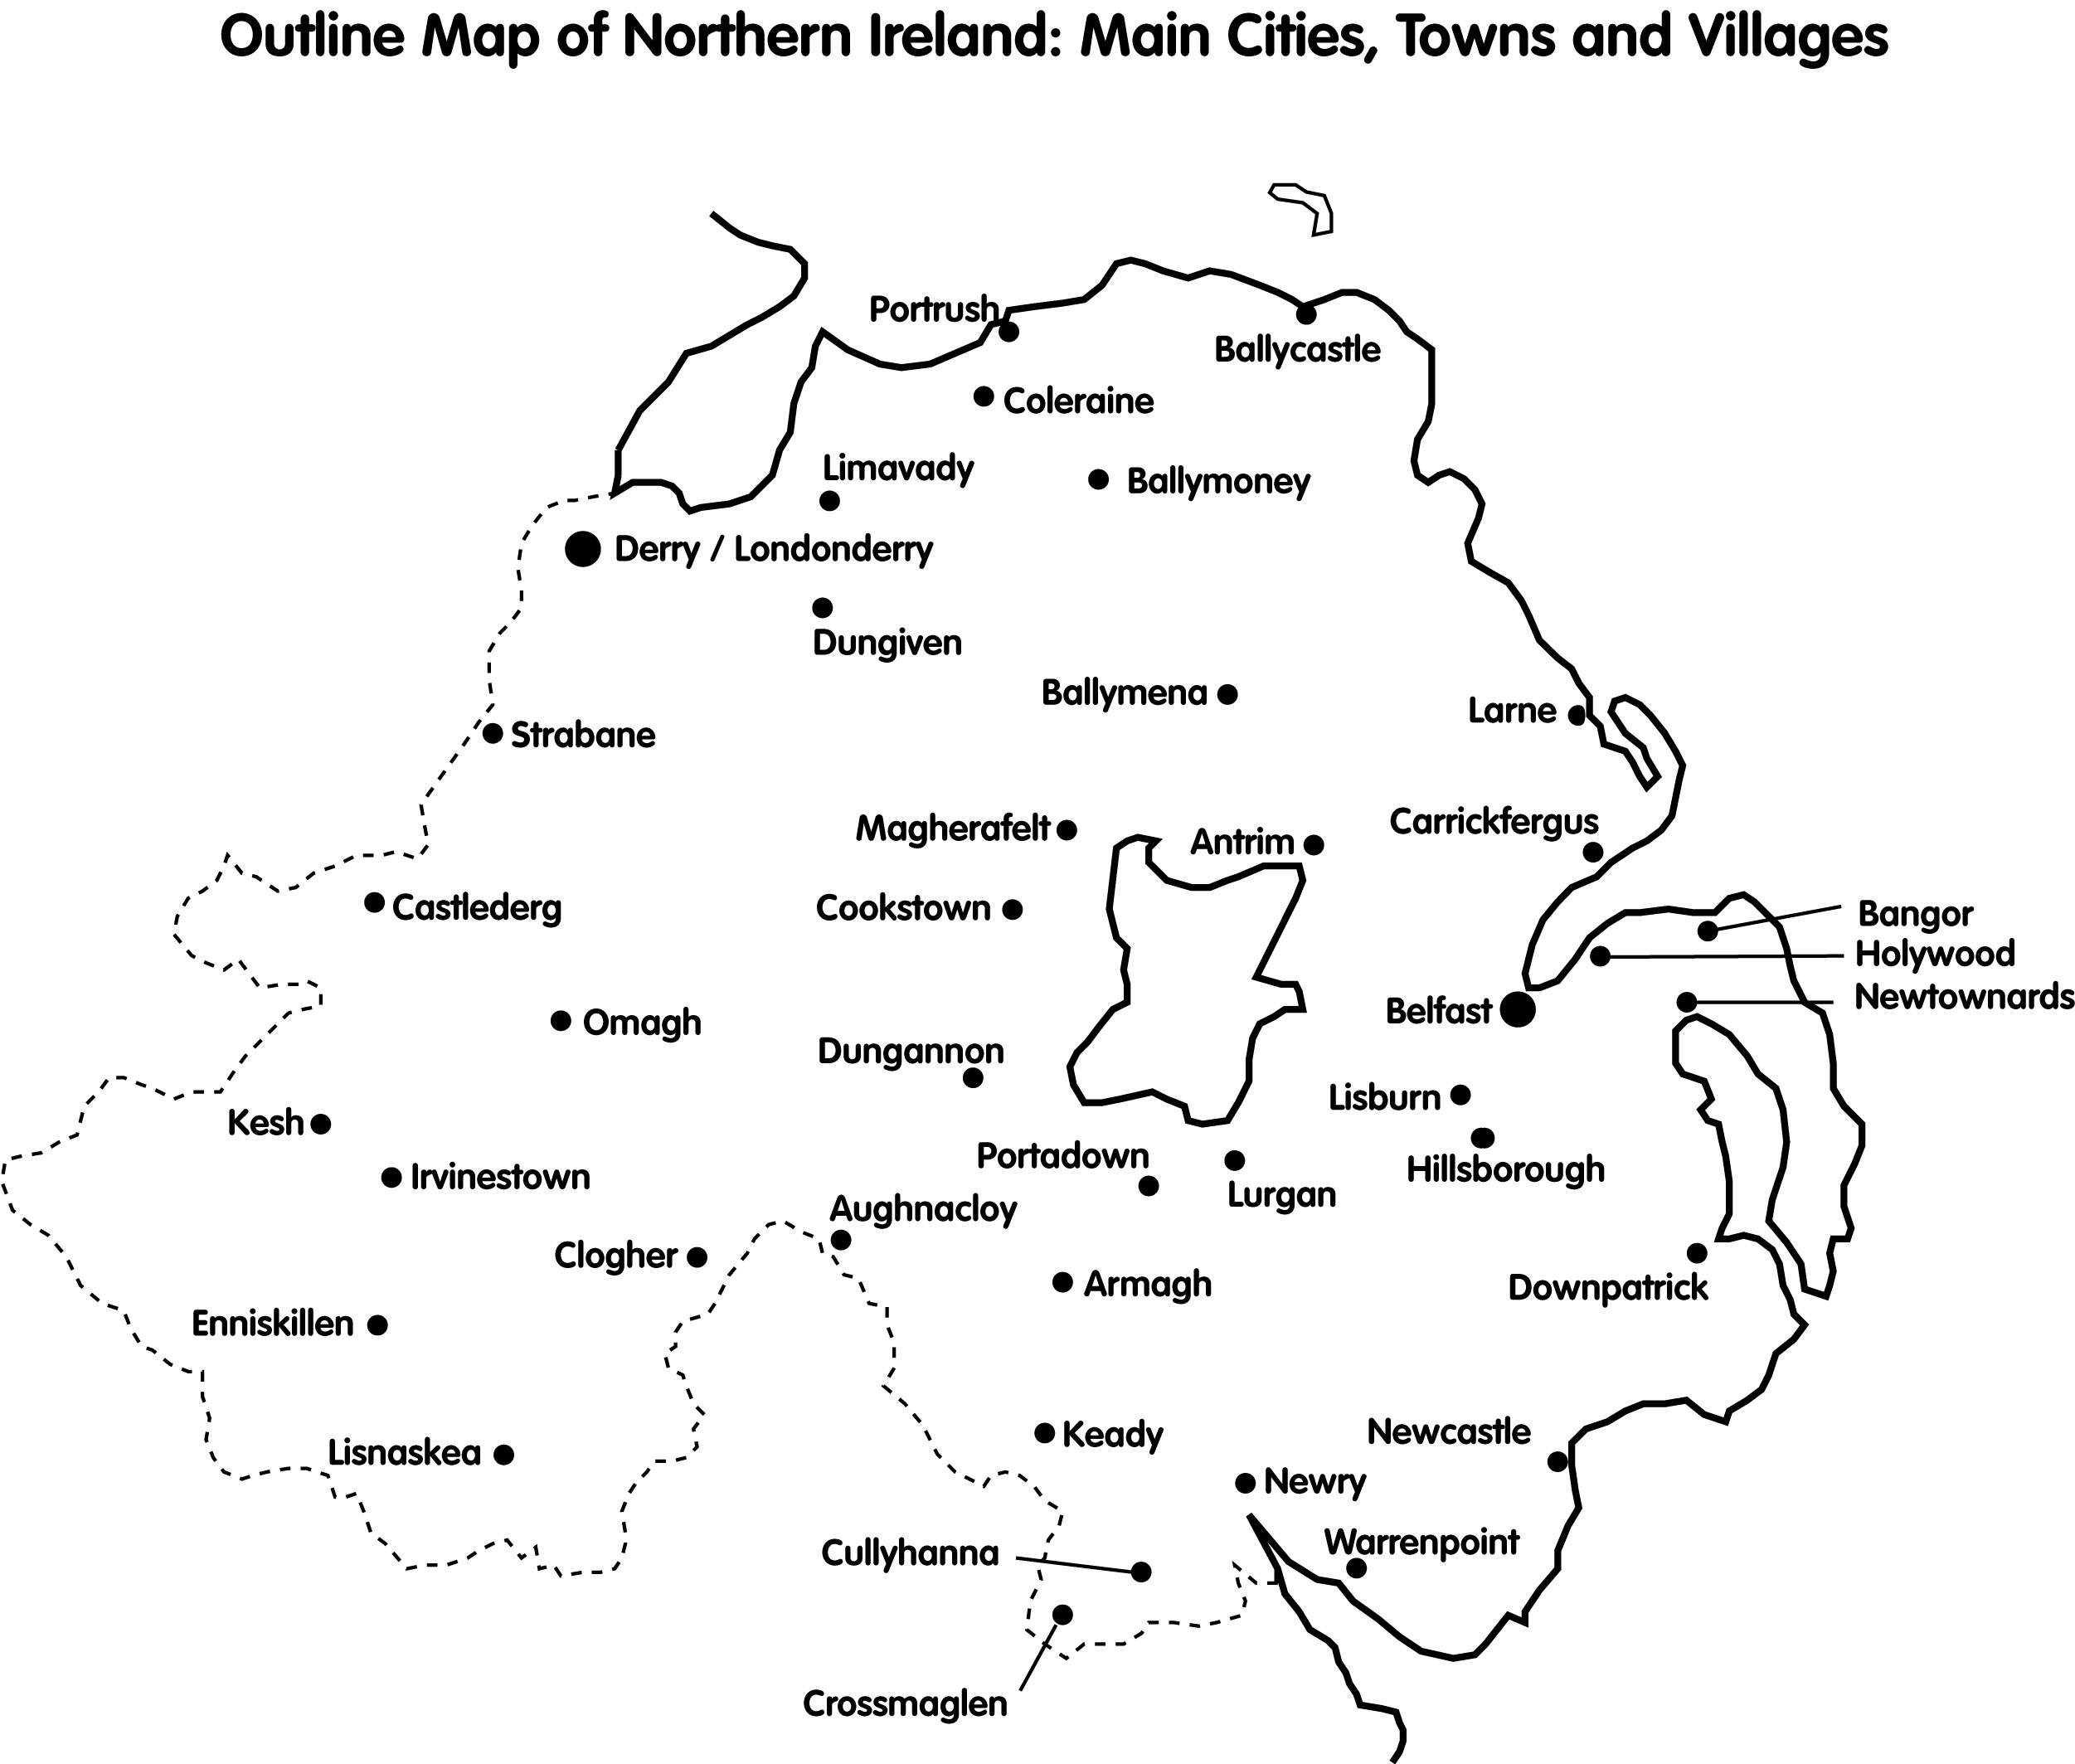 CAIN Maps Outline Map Of Northern Ireland Main Cities Towns - Cities map of ireland